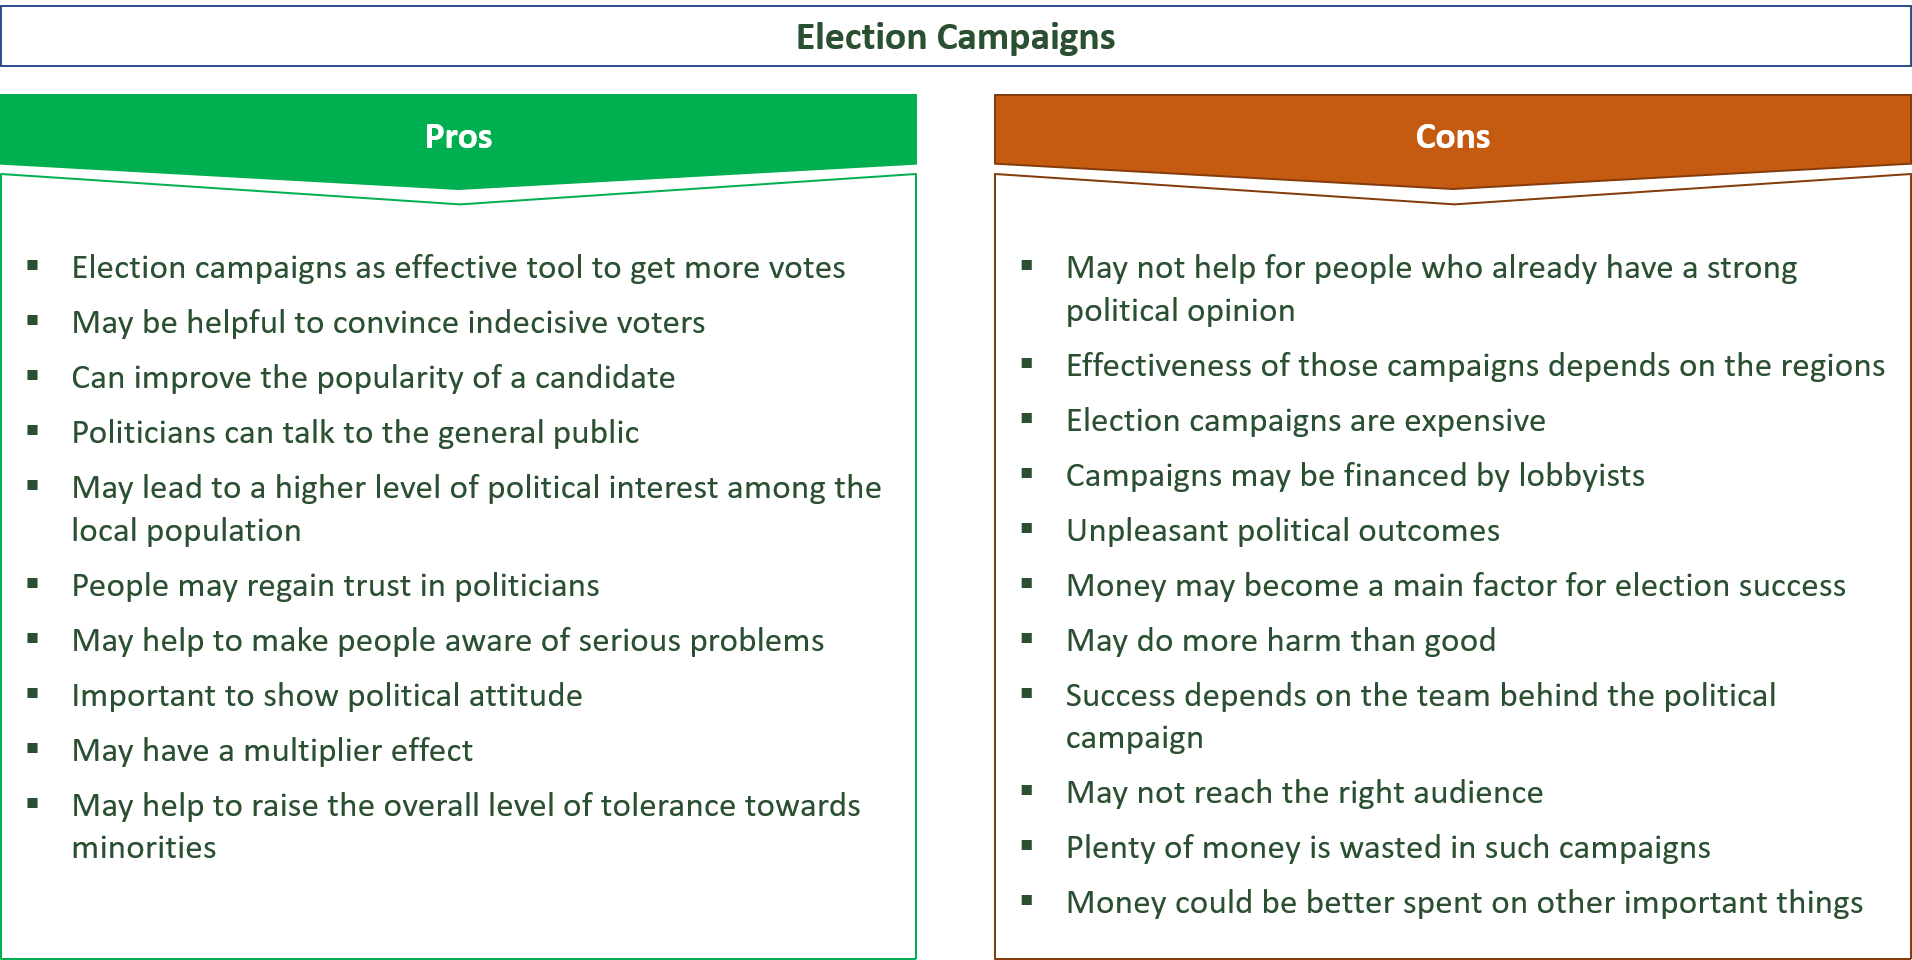 advantages and disadvantages of election campaigns